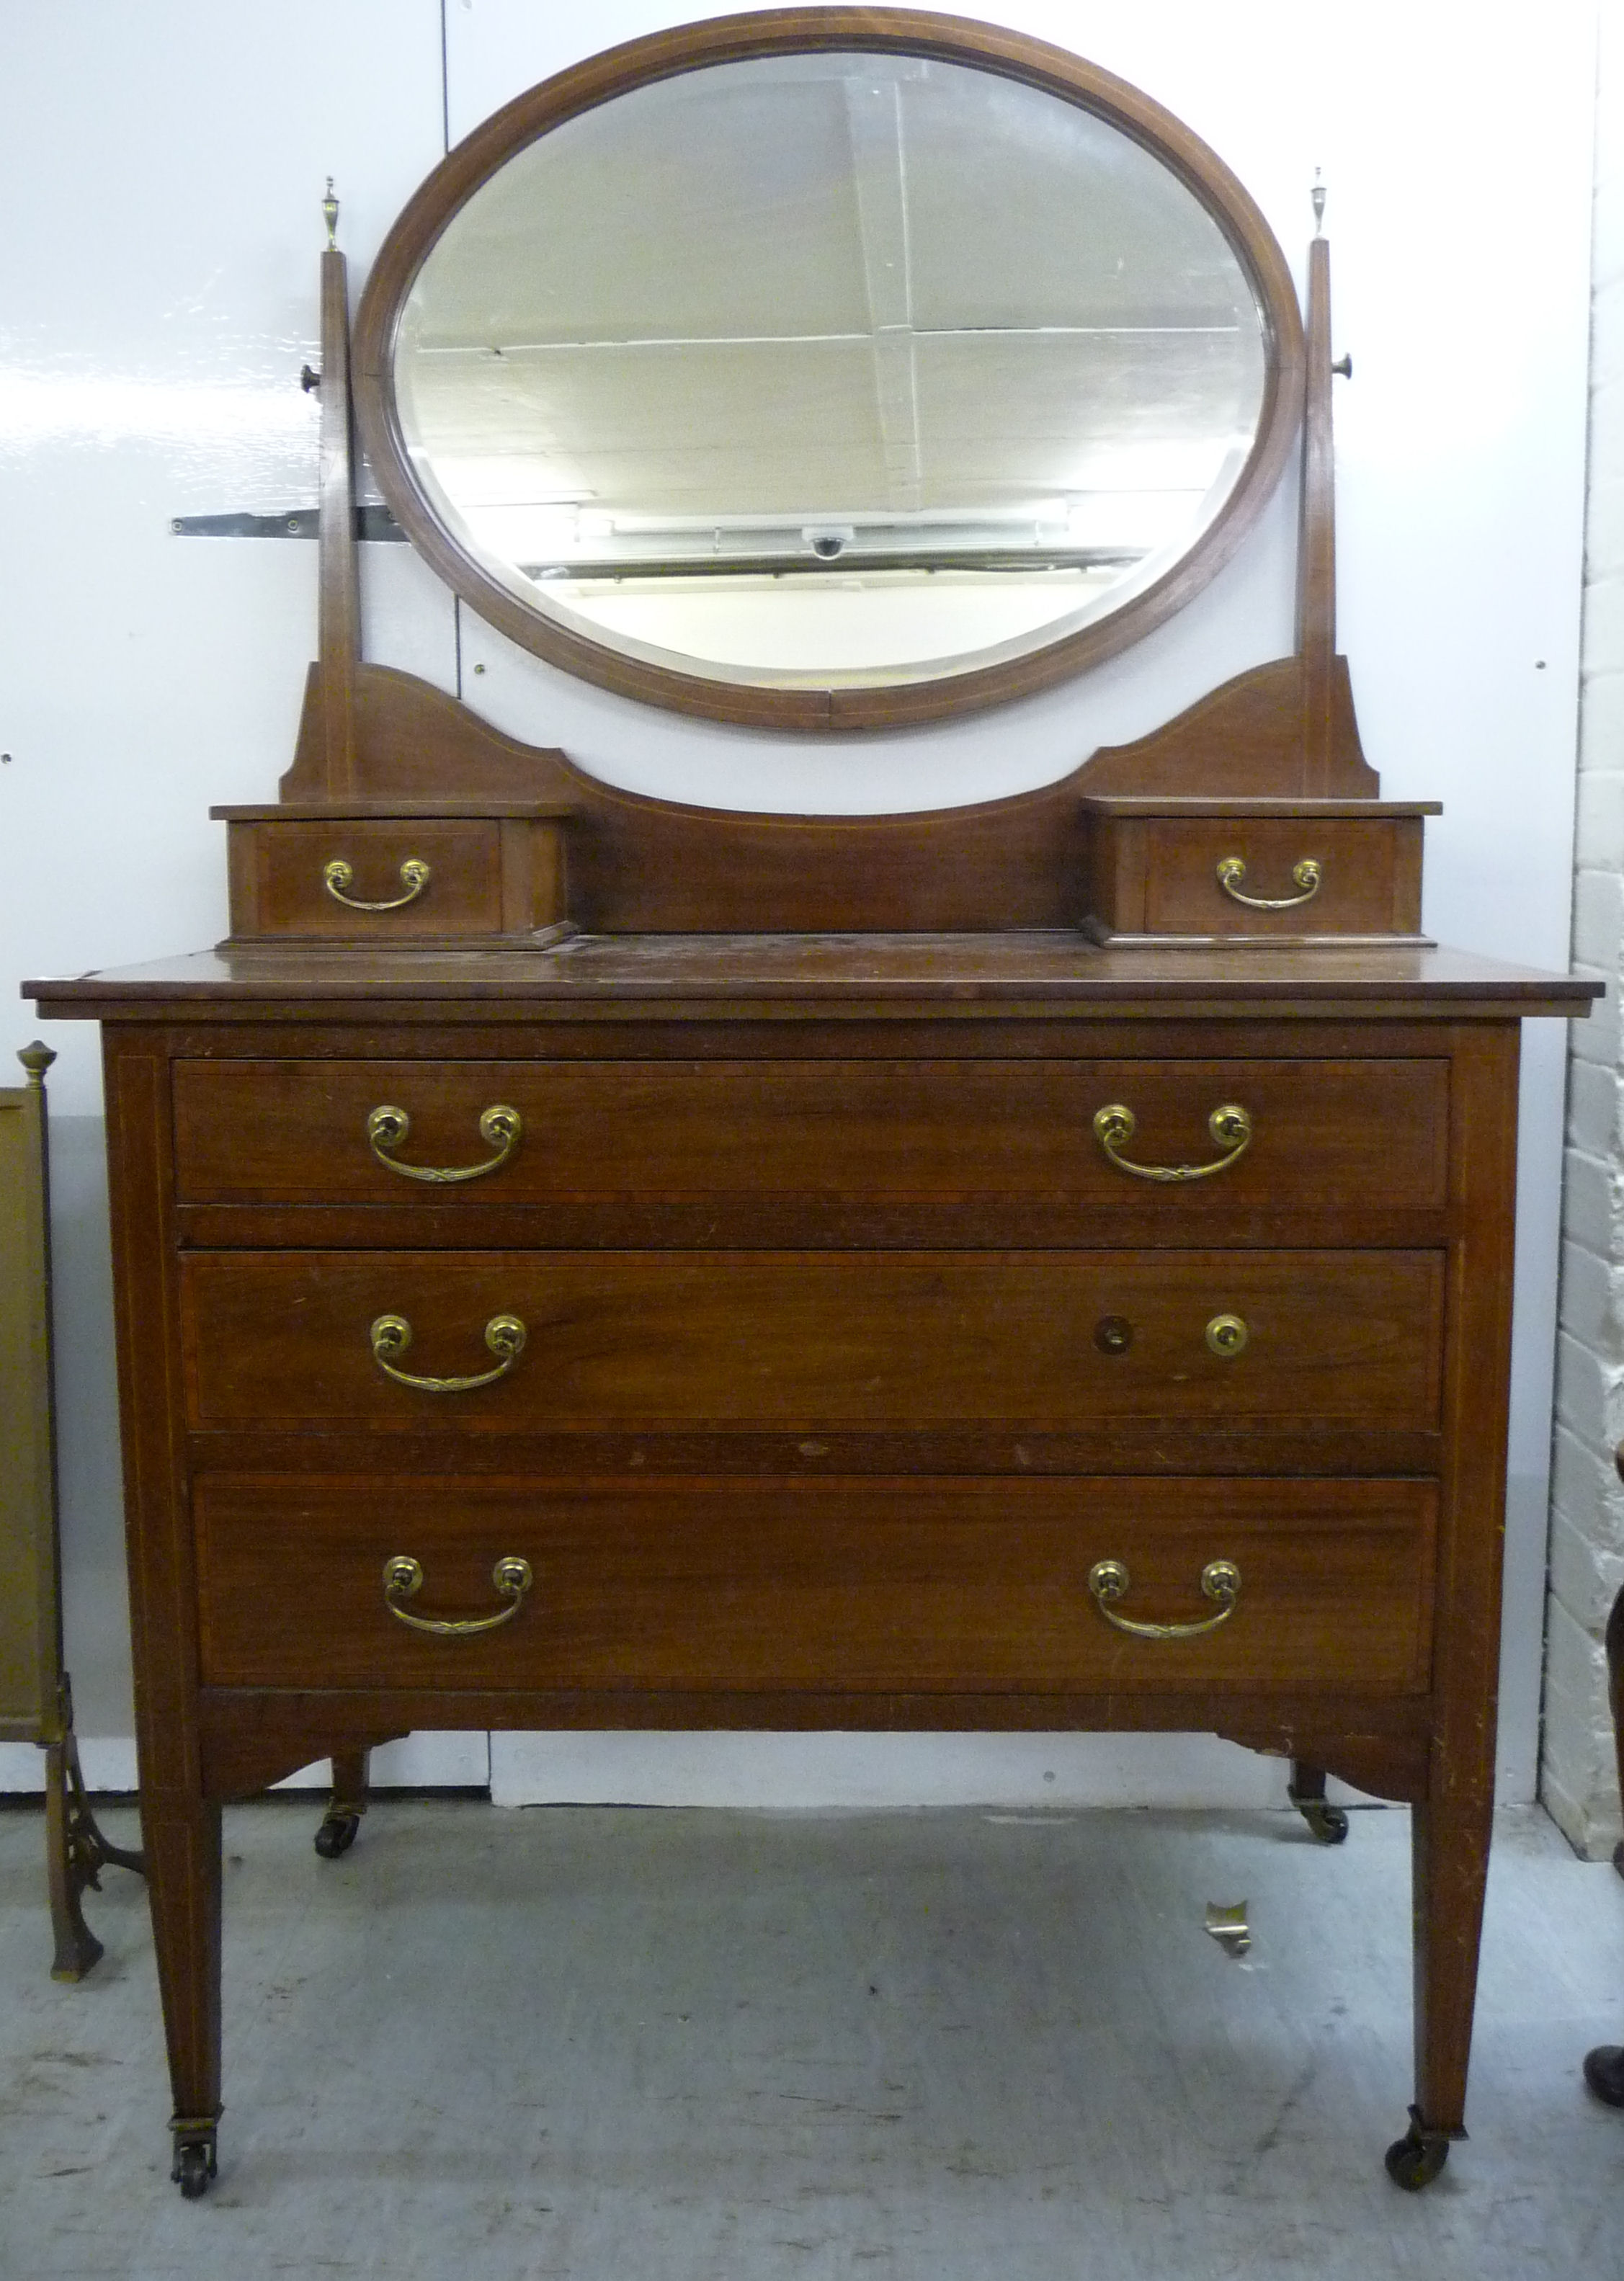 Lot 53 - An Edwardian satinwood string inlaid mahogany dressing table, surmounted by an oval interior,